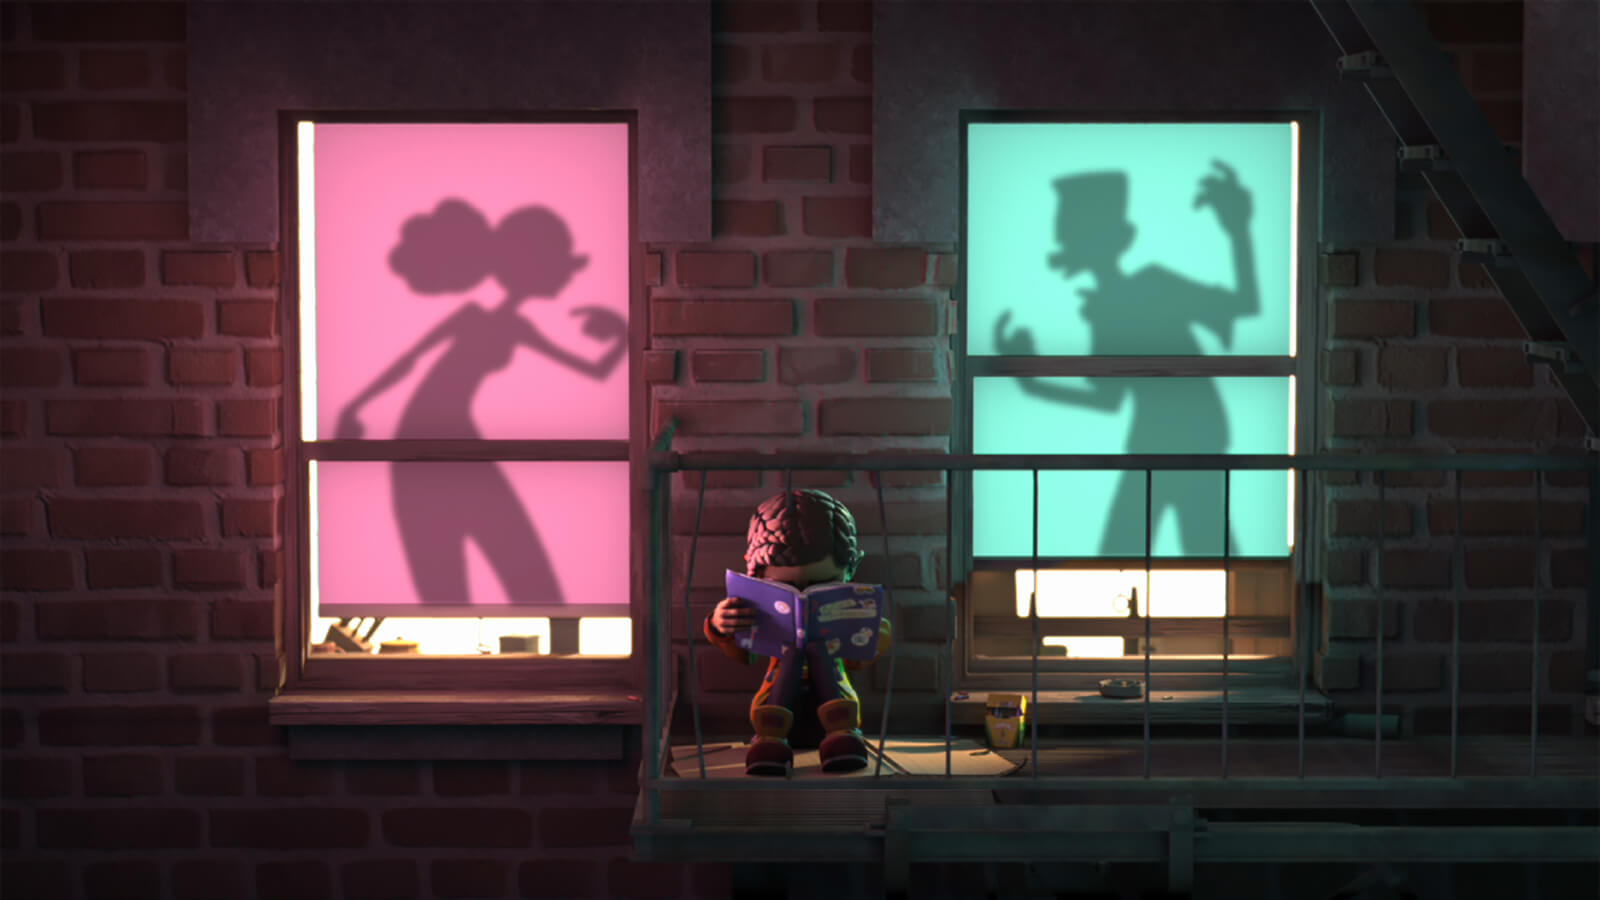 A young girl sits on an apartment fire escape, her head buried in a book, as the silhouettes of two people argue behind her